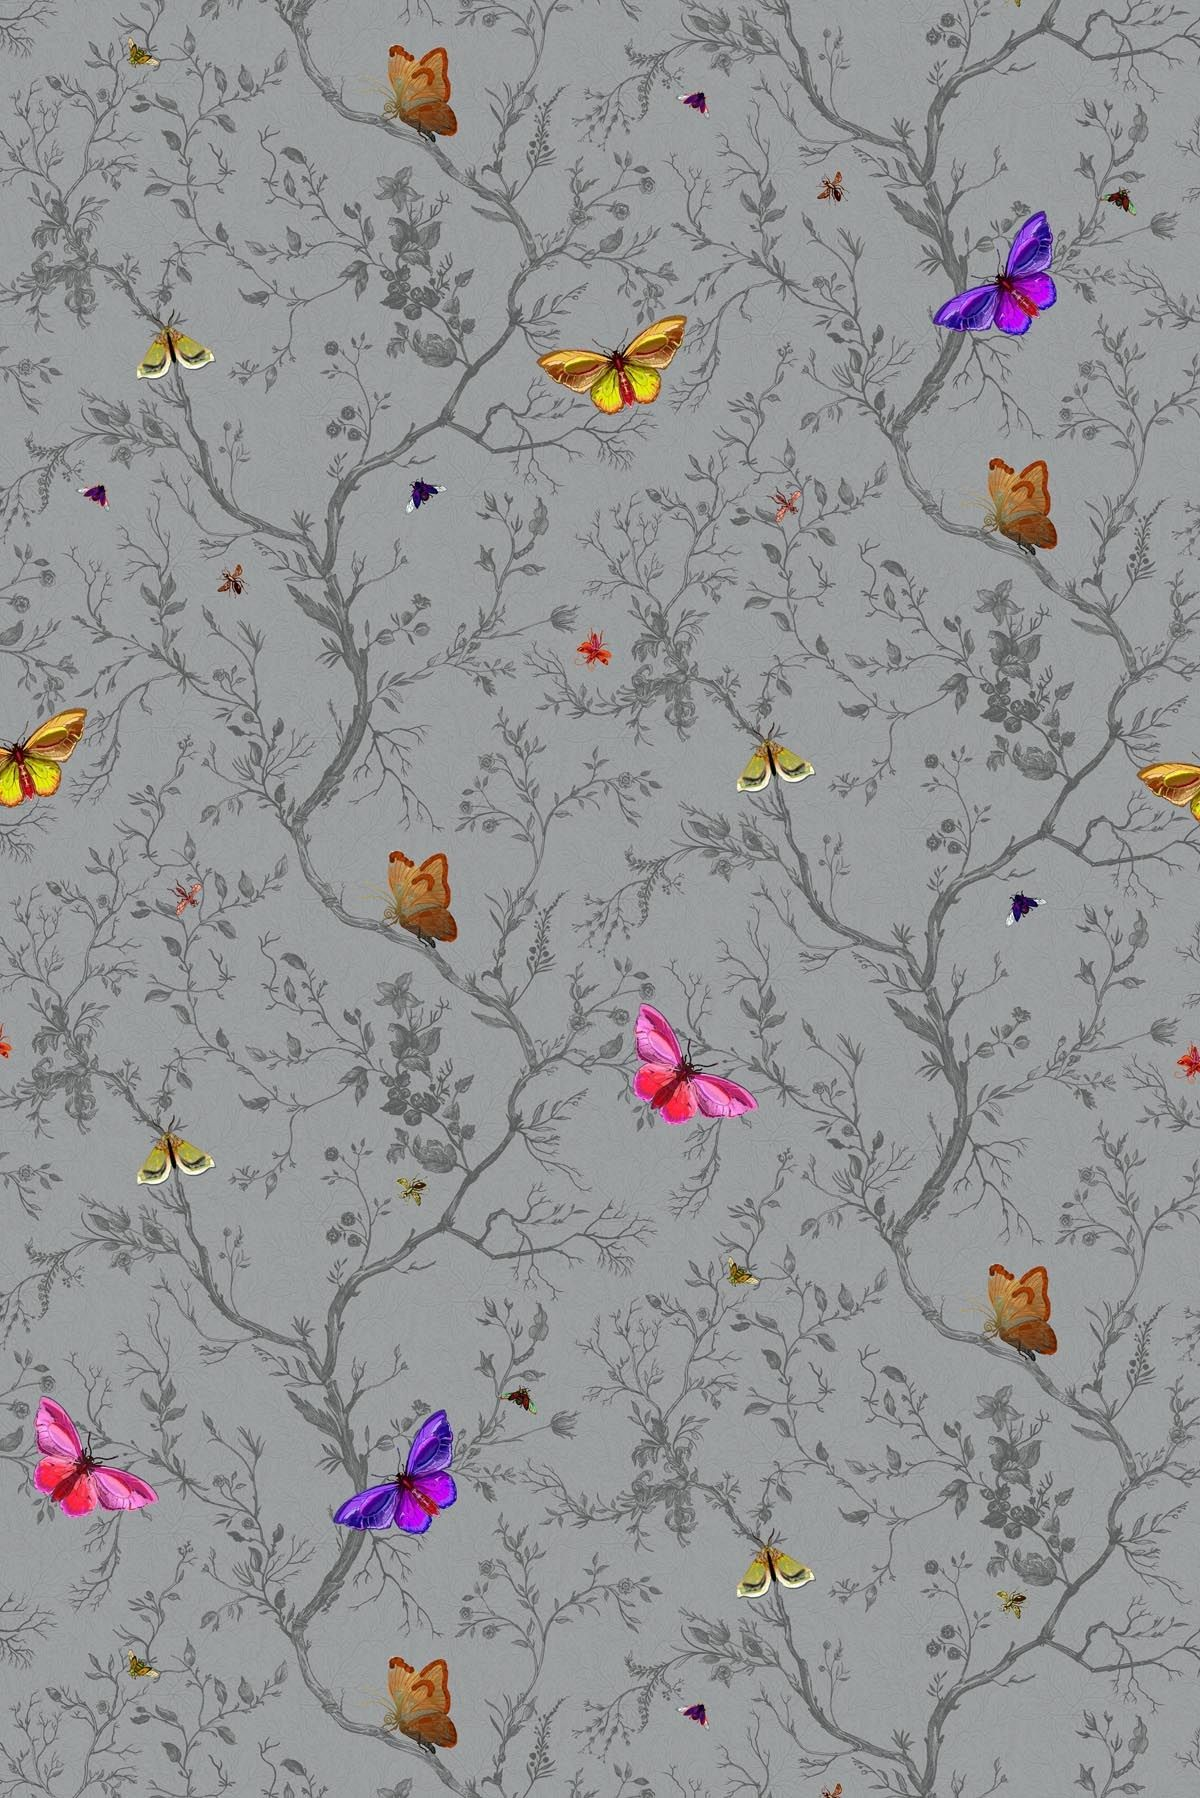 Butterflies Wallpaper Butterflies Wallpaper Butterflies - Timorous Beastie Wall Paper , HD Wallpaper & Backgrounds